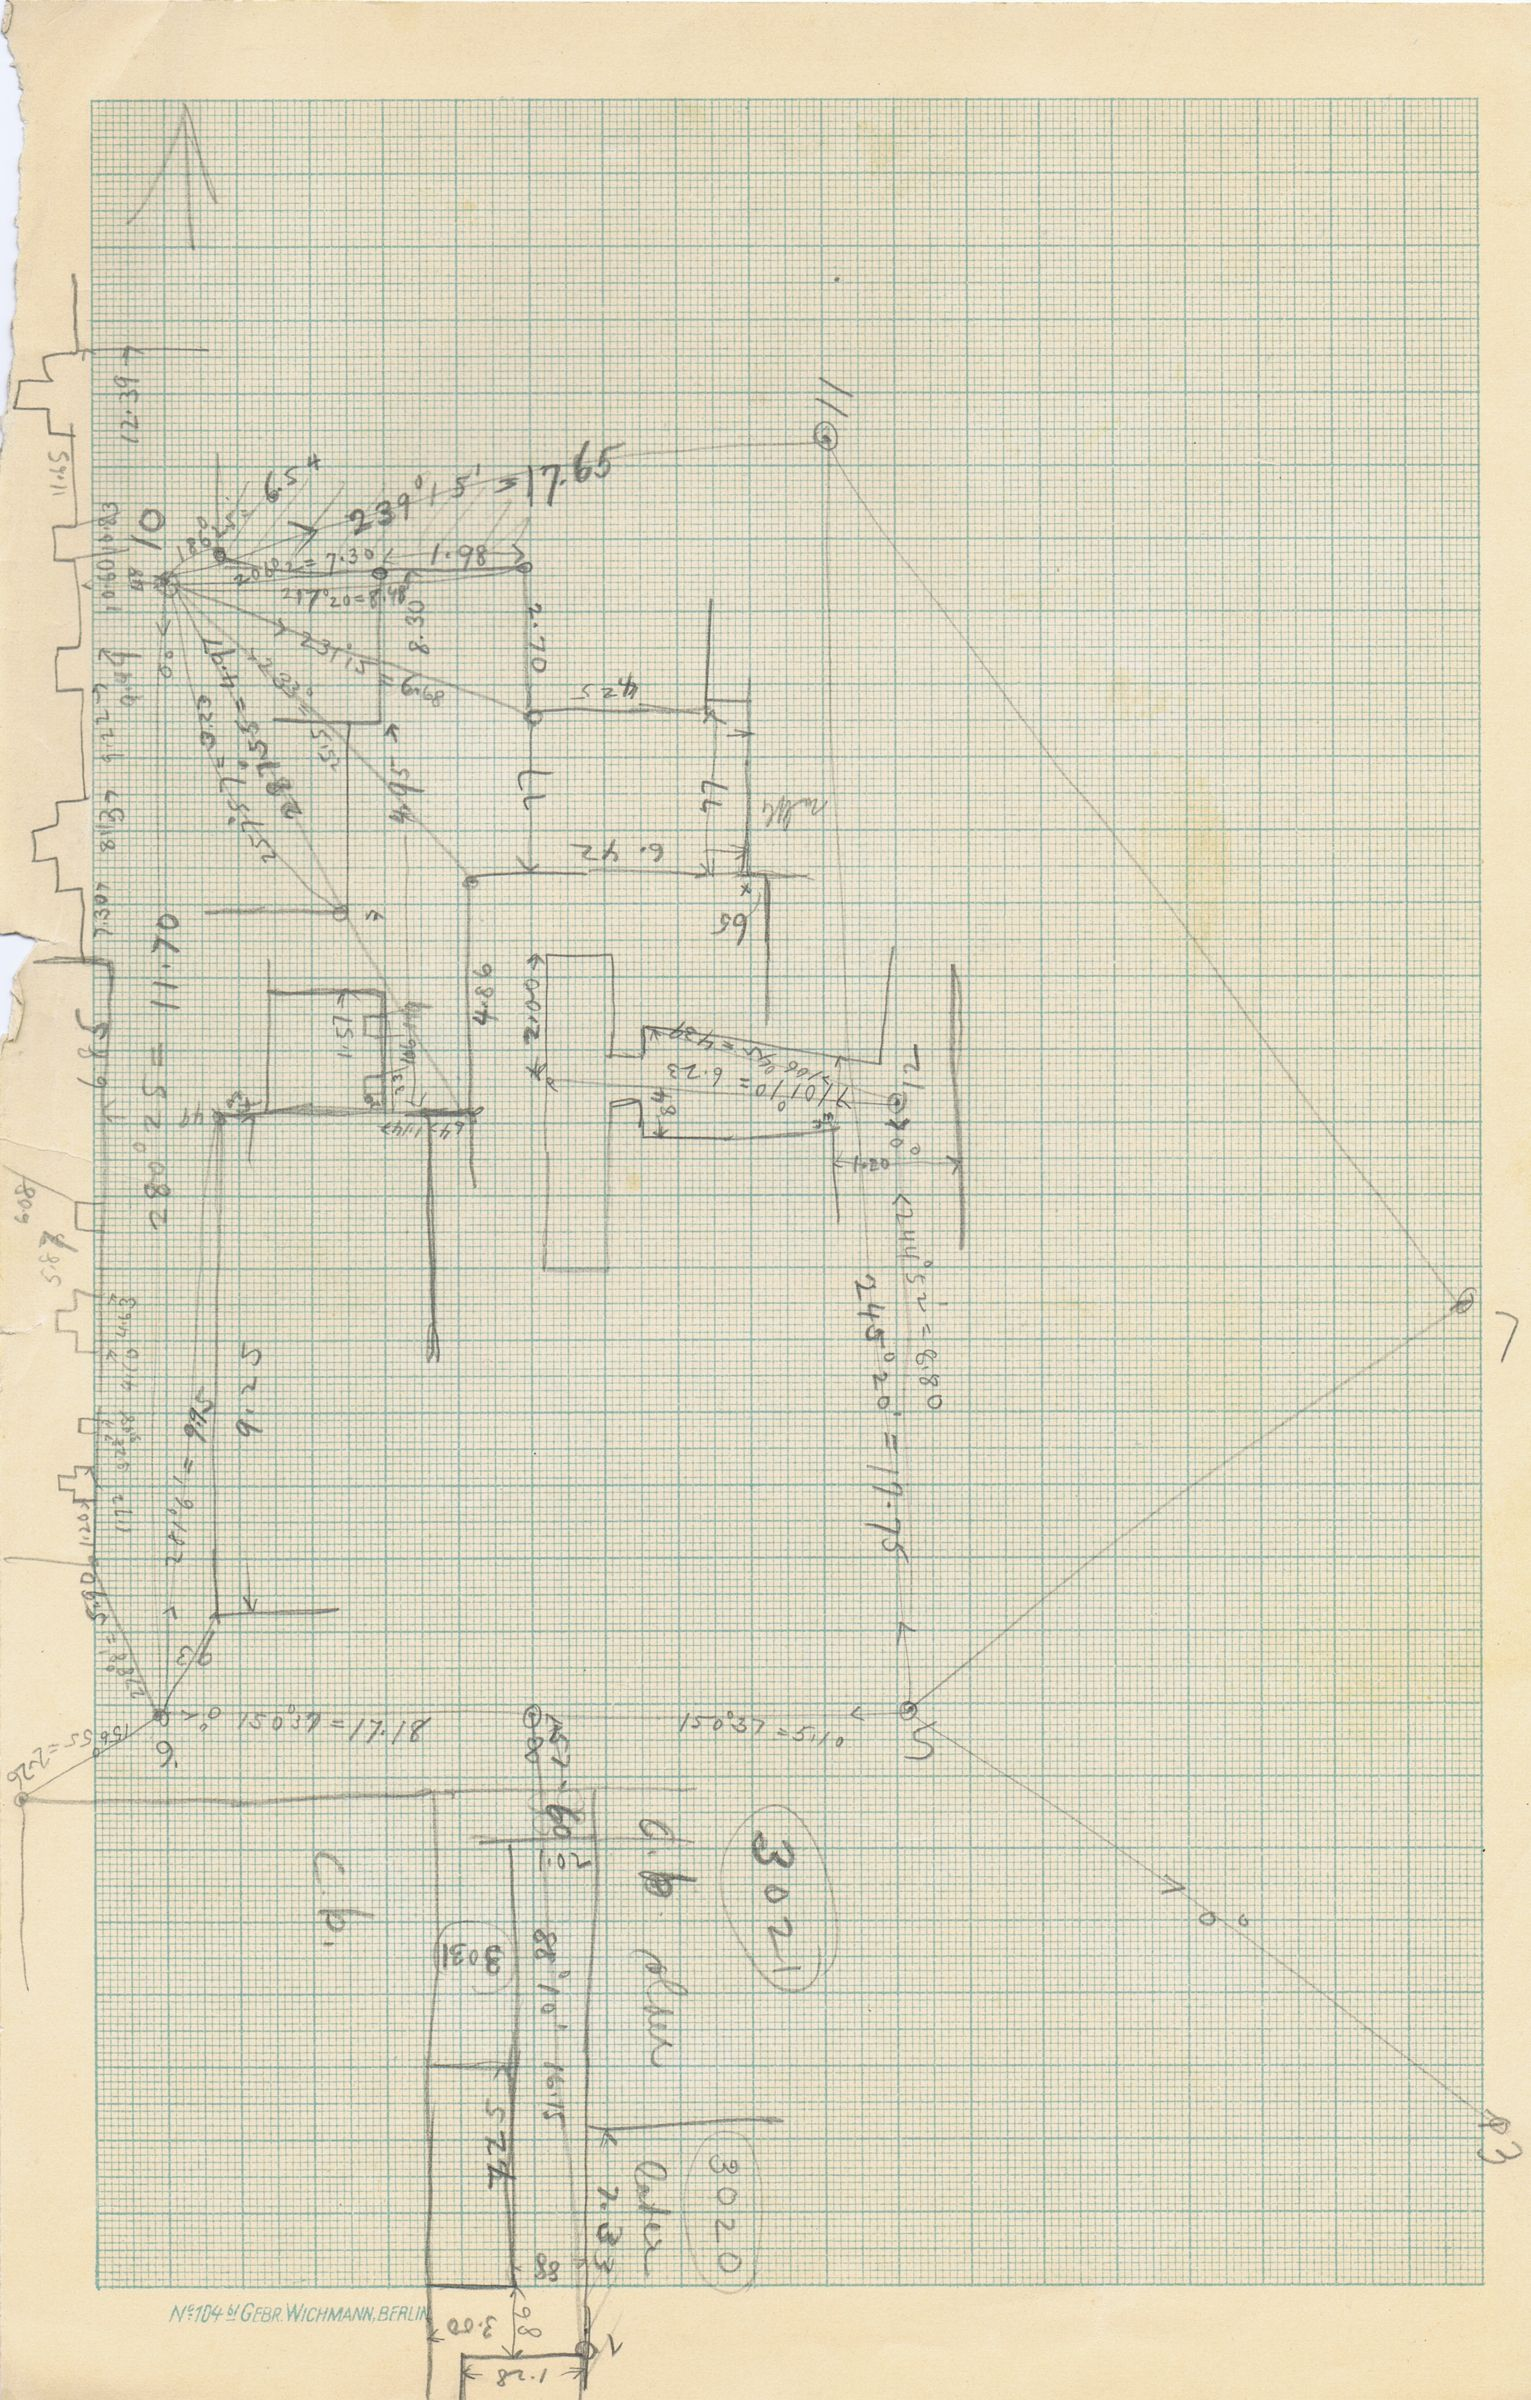 Maps and plans: Sketch plan of G 3020, G 3021(?)